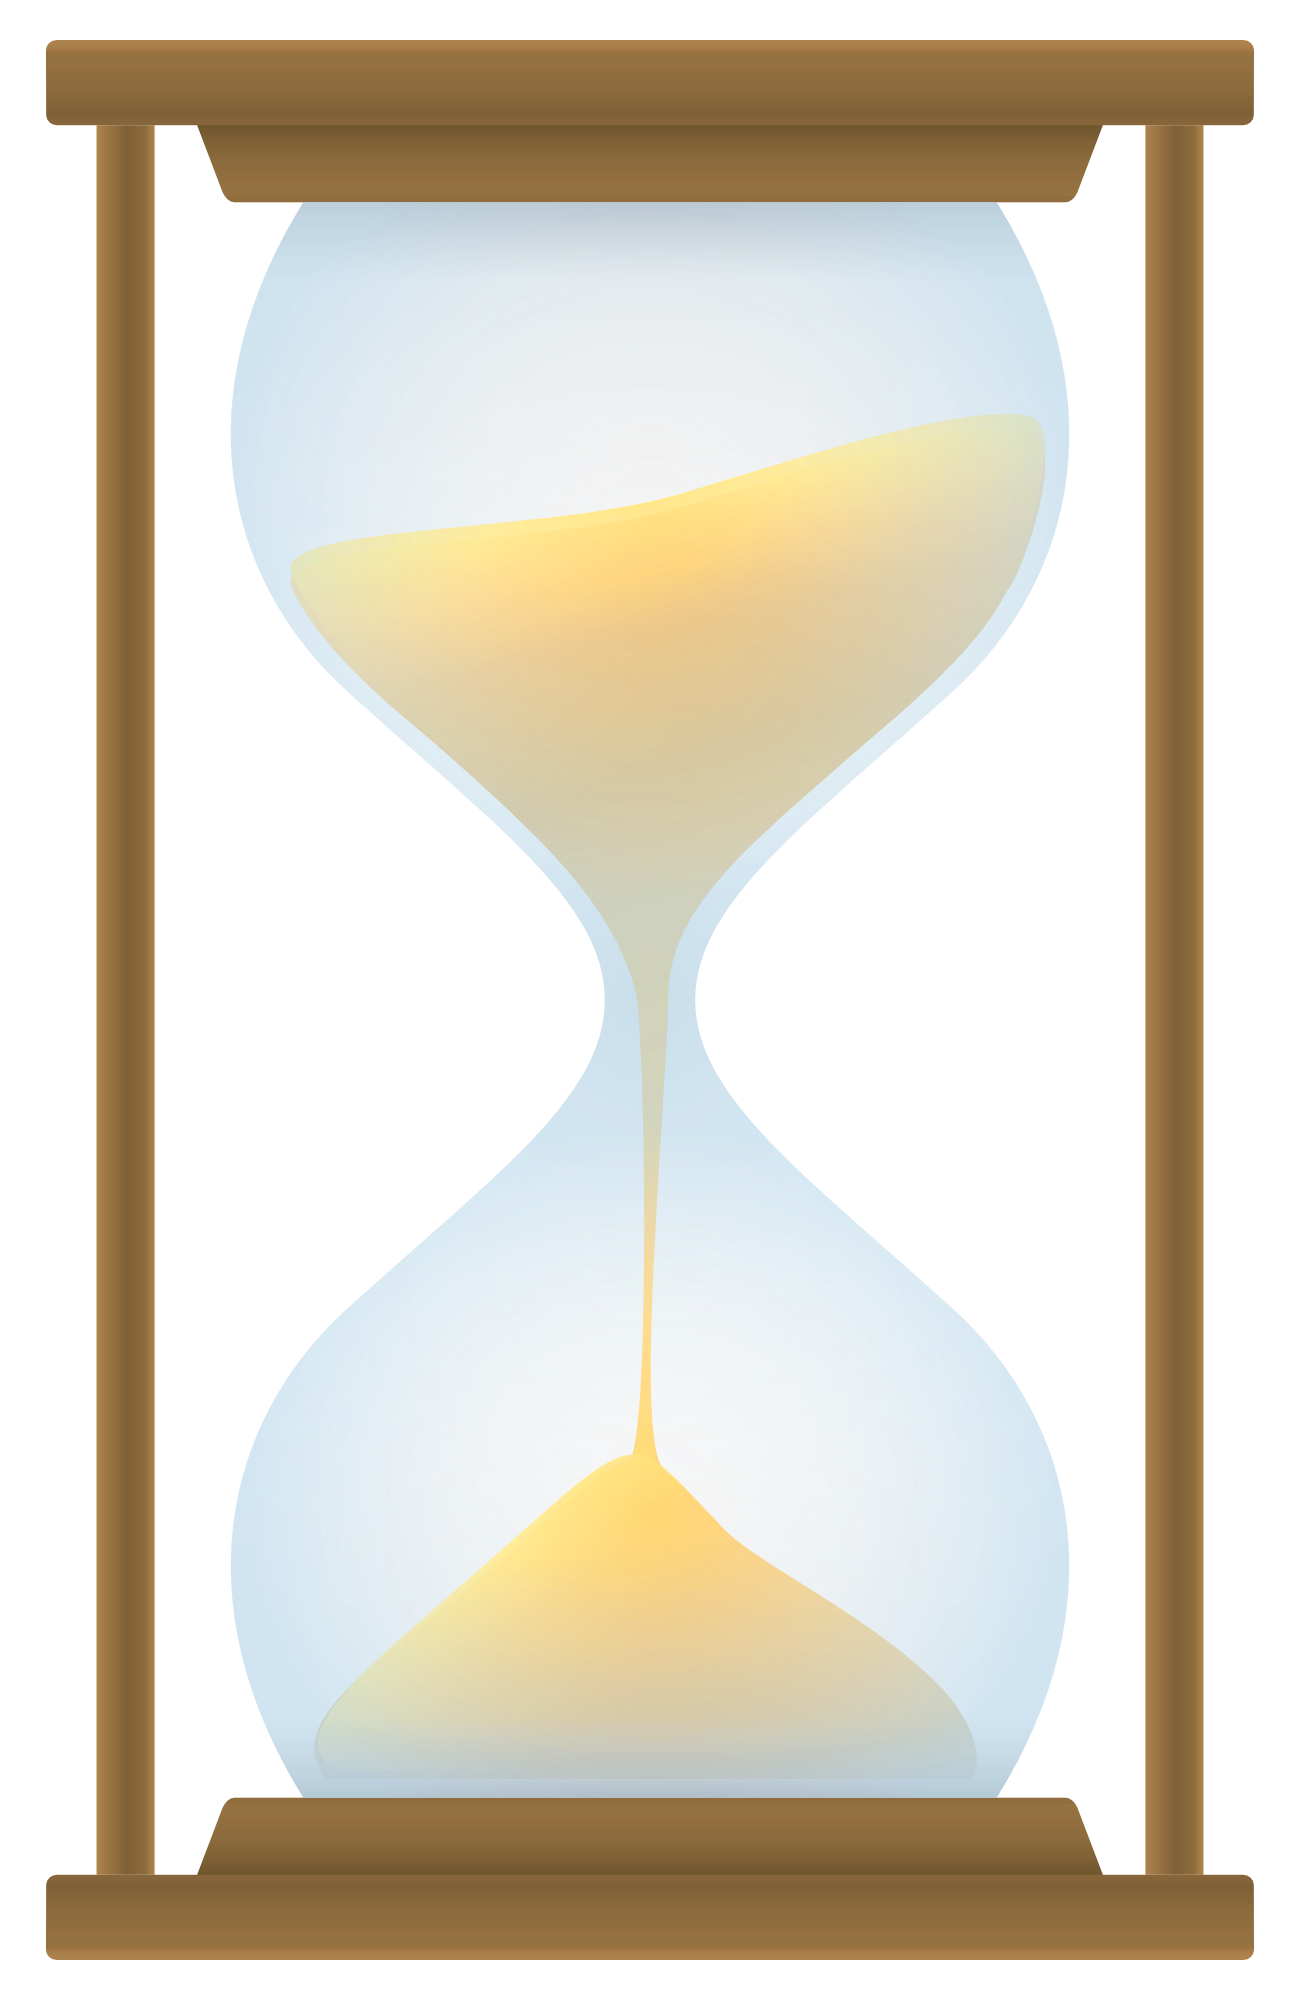 Vector png transparent image. Hourglass clipart sand clock